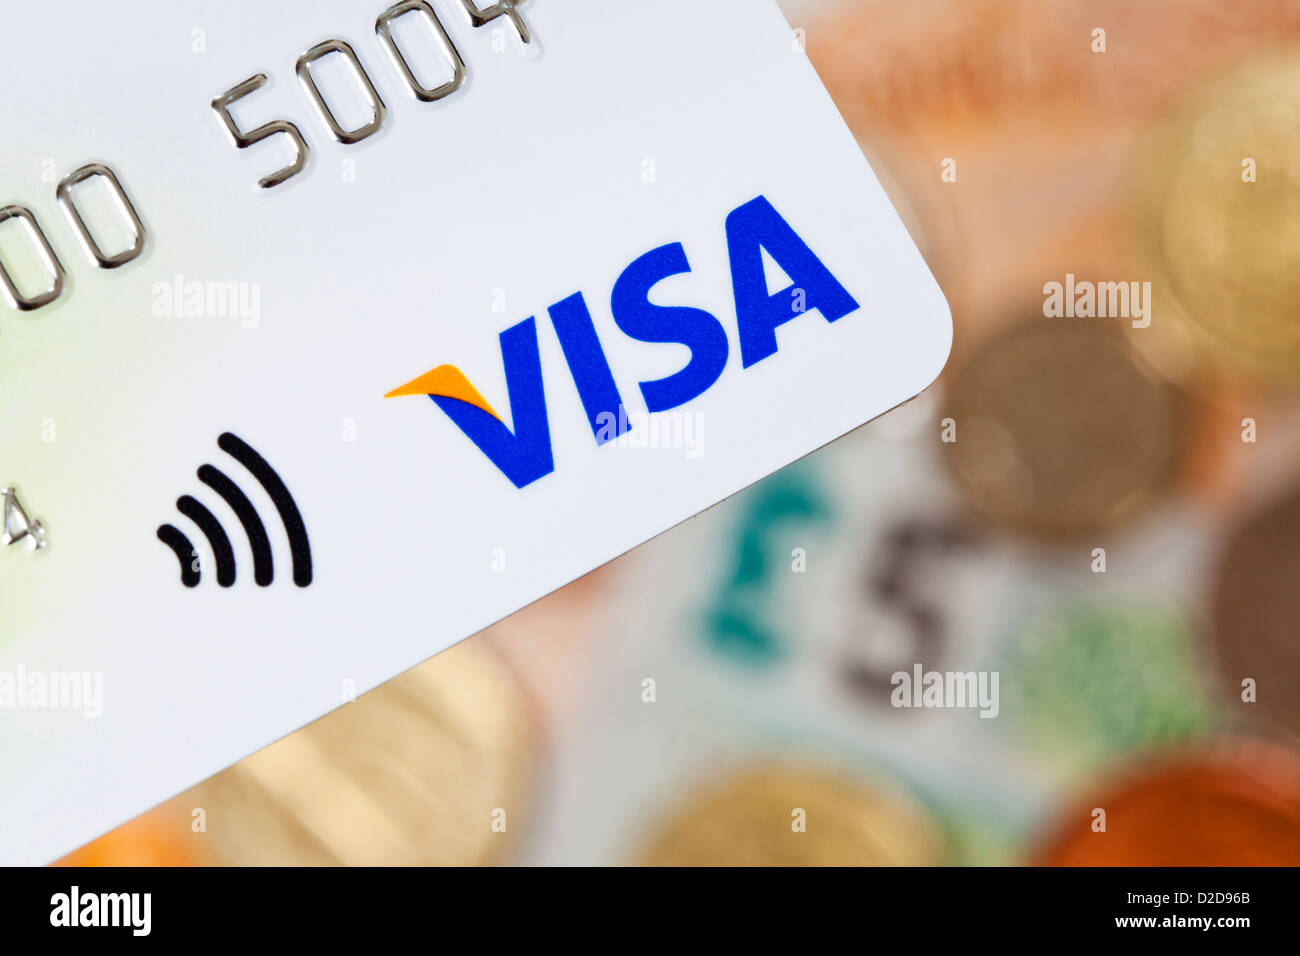 Bath, United Kingdom - November 8, 2011: Close-up of a contactless Visa credit card with UK currency in the background Stock Photo